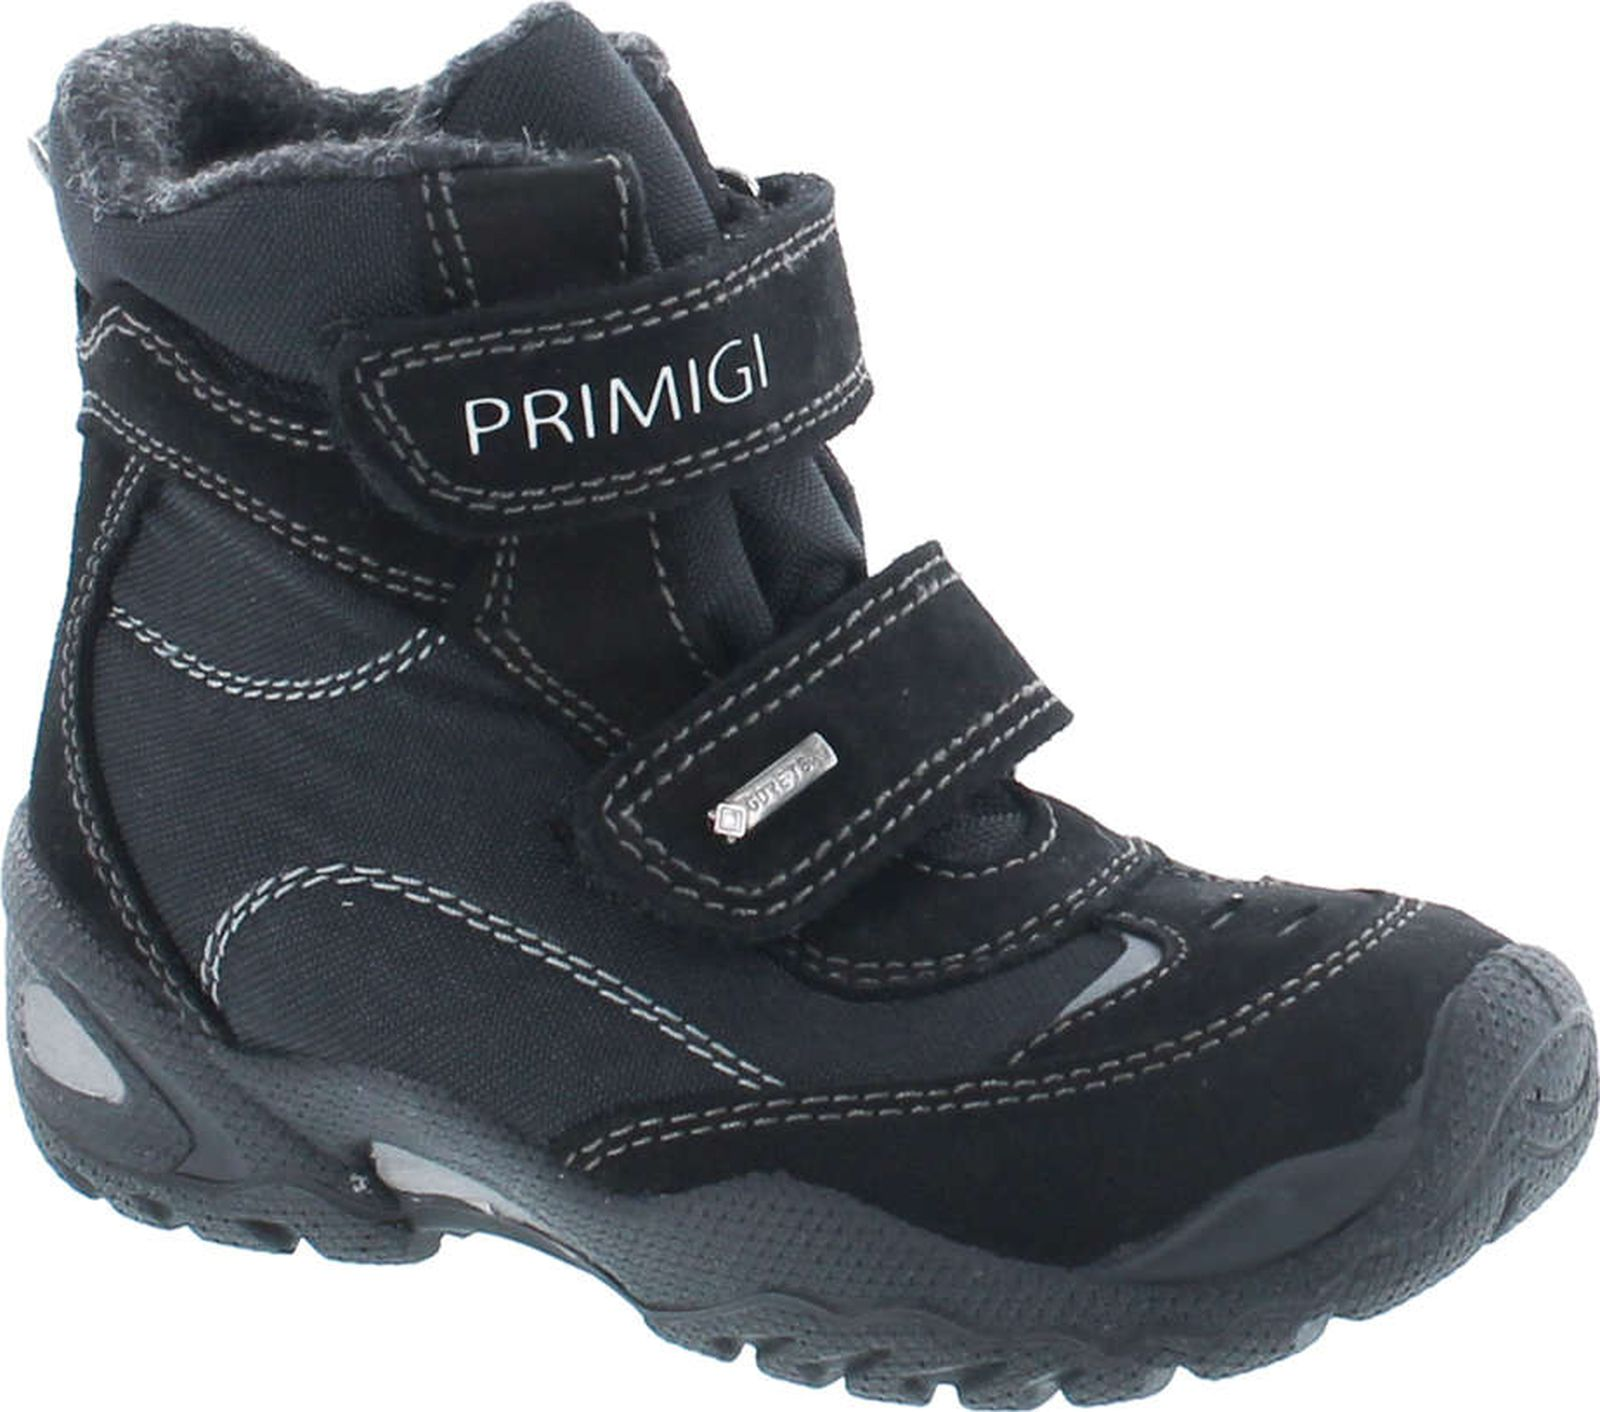 Primigi Boys 8645 Gore Tex Winter All Waterproof Boots by Primigi